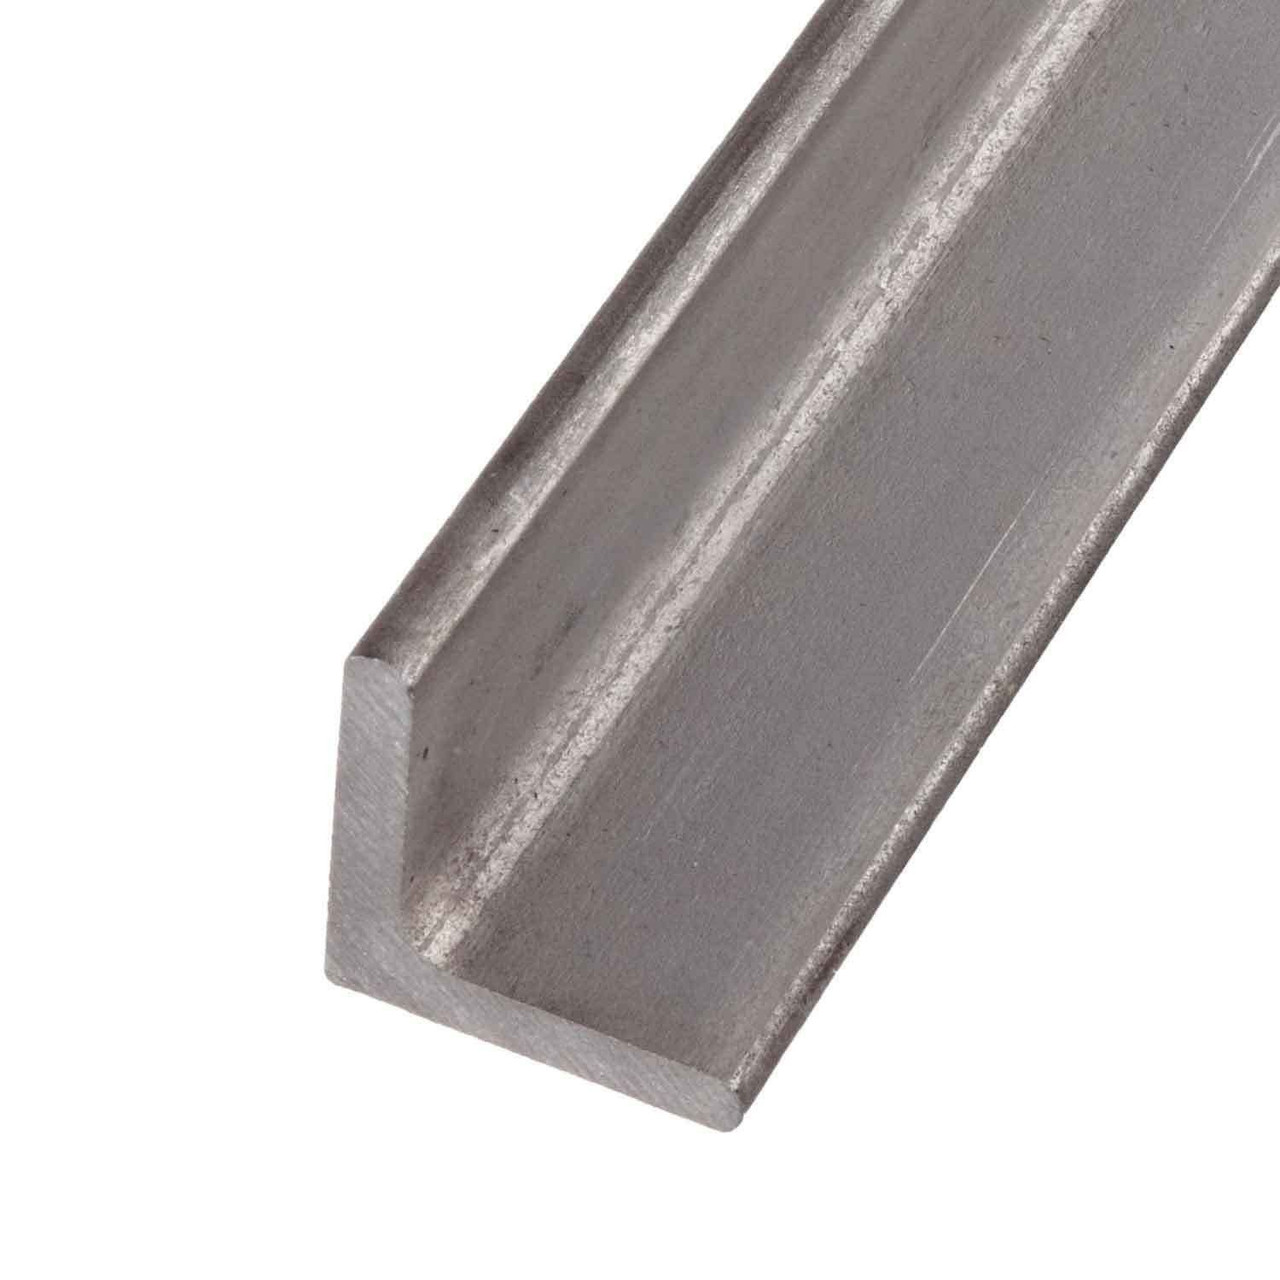 """304 Stainless Steel Angle, 1.25"""" x 1.25"""" x 0.250"""" x 24 inches"""